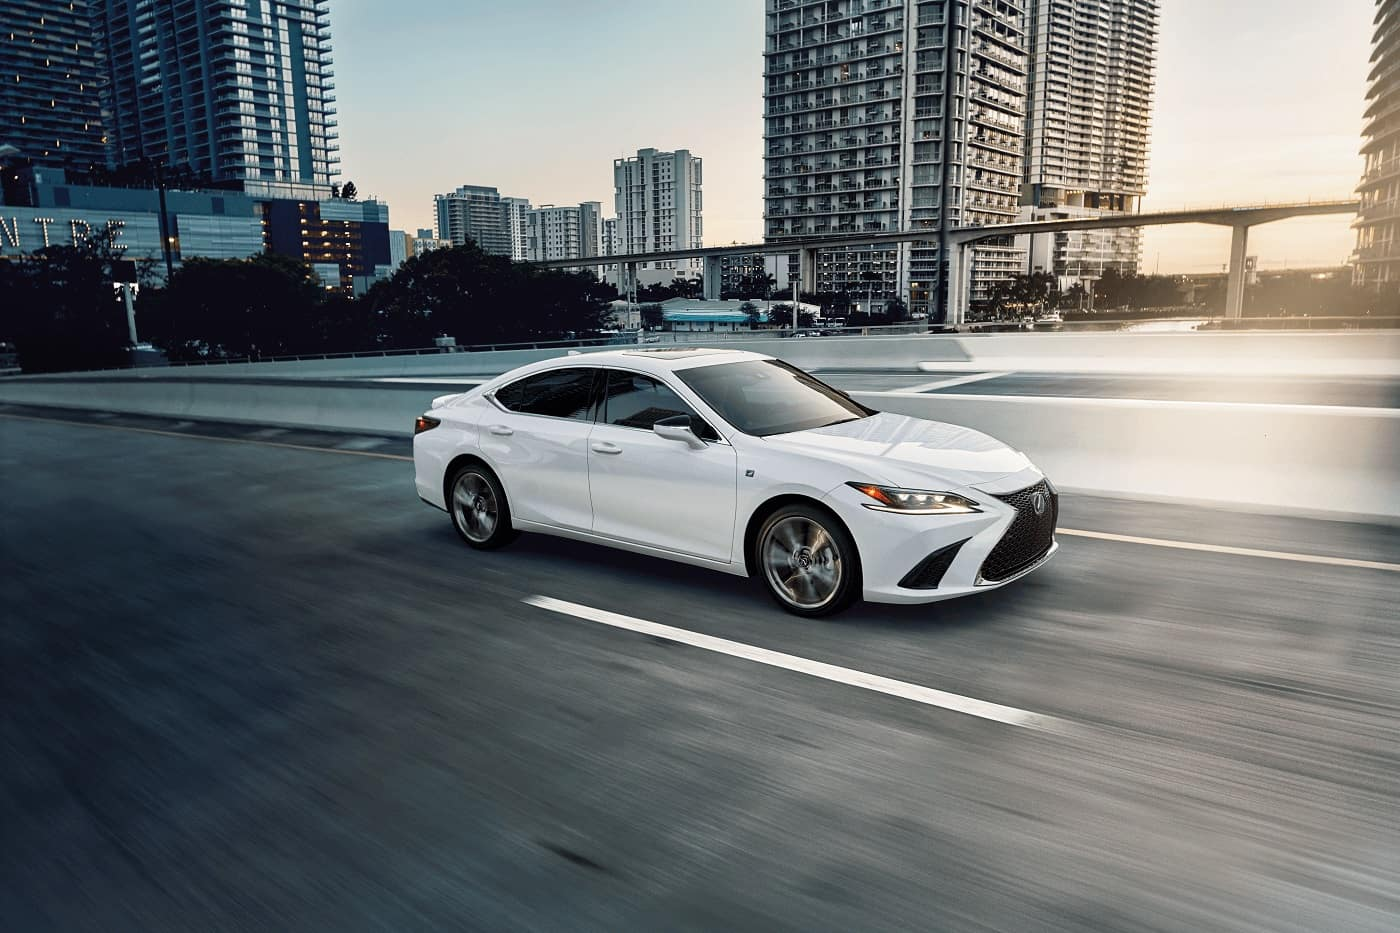 Pre-Owned Lexus for Sale